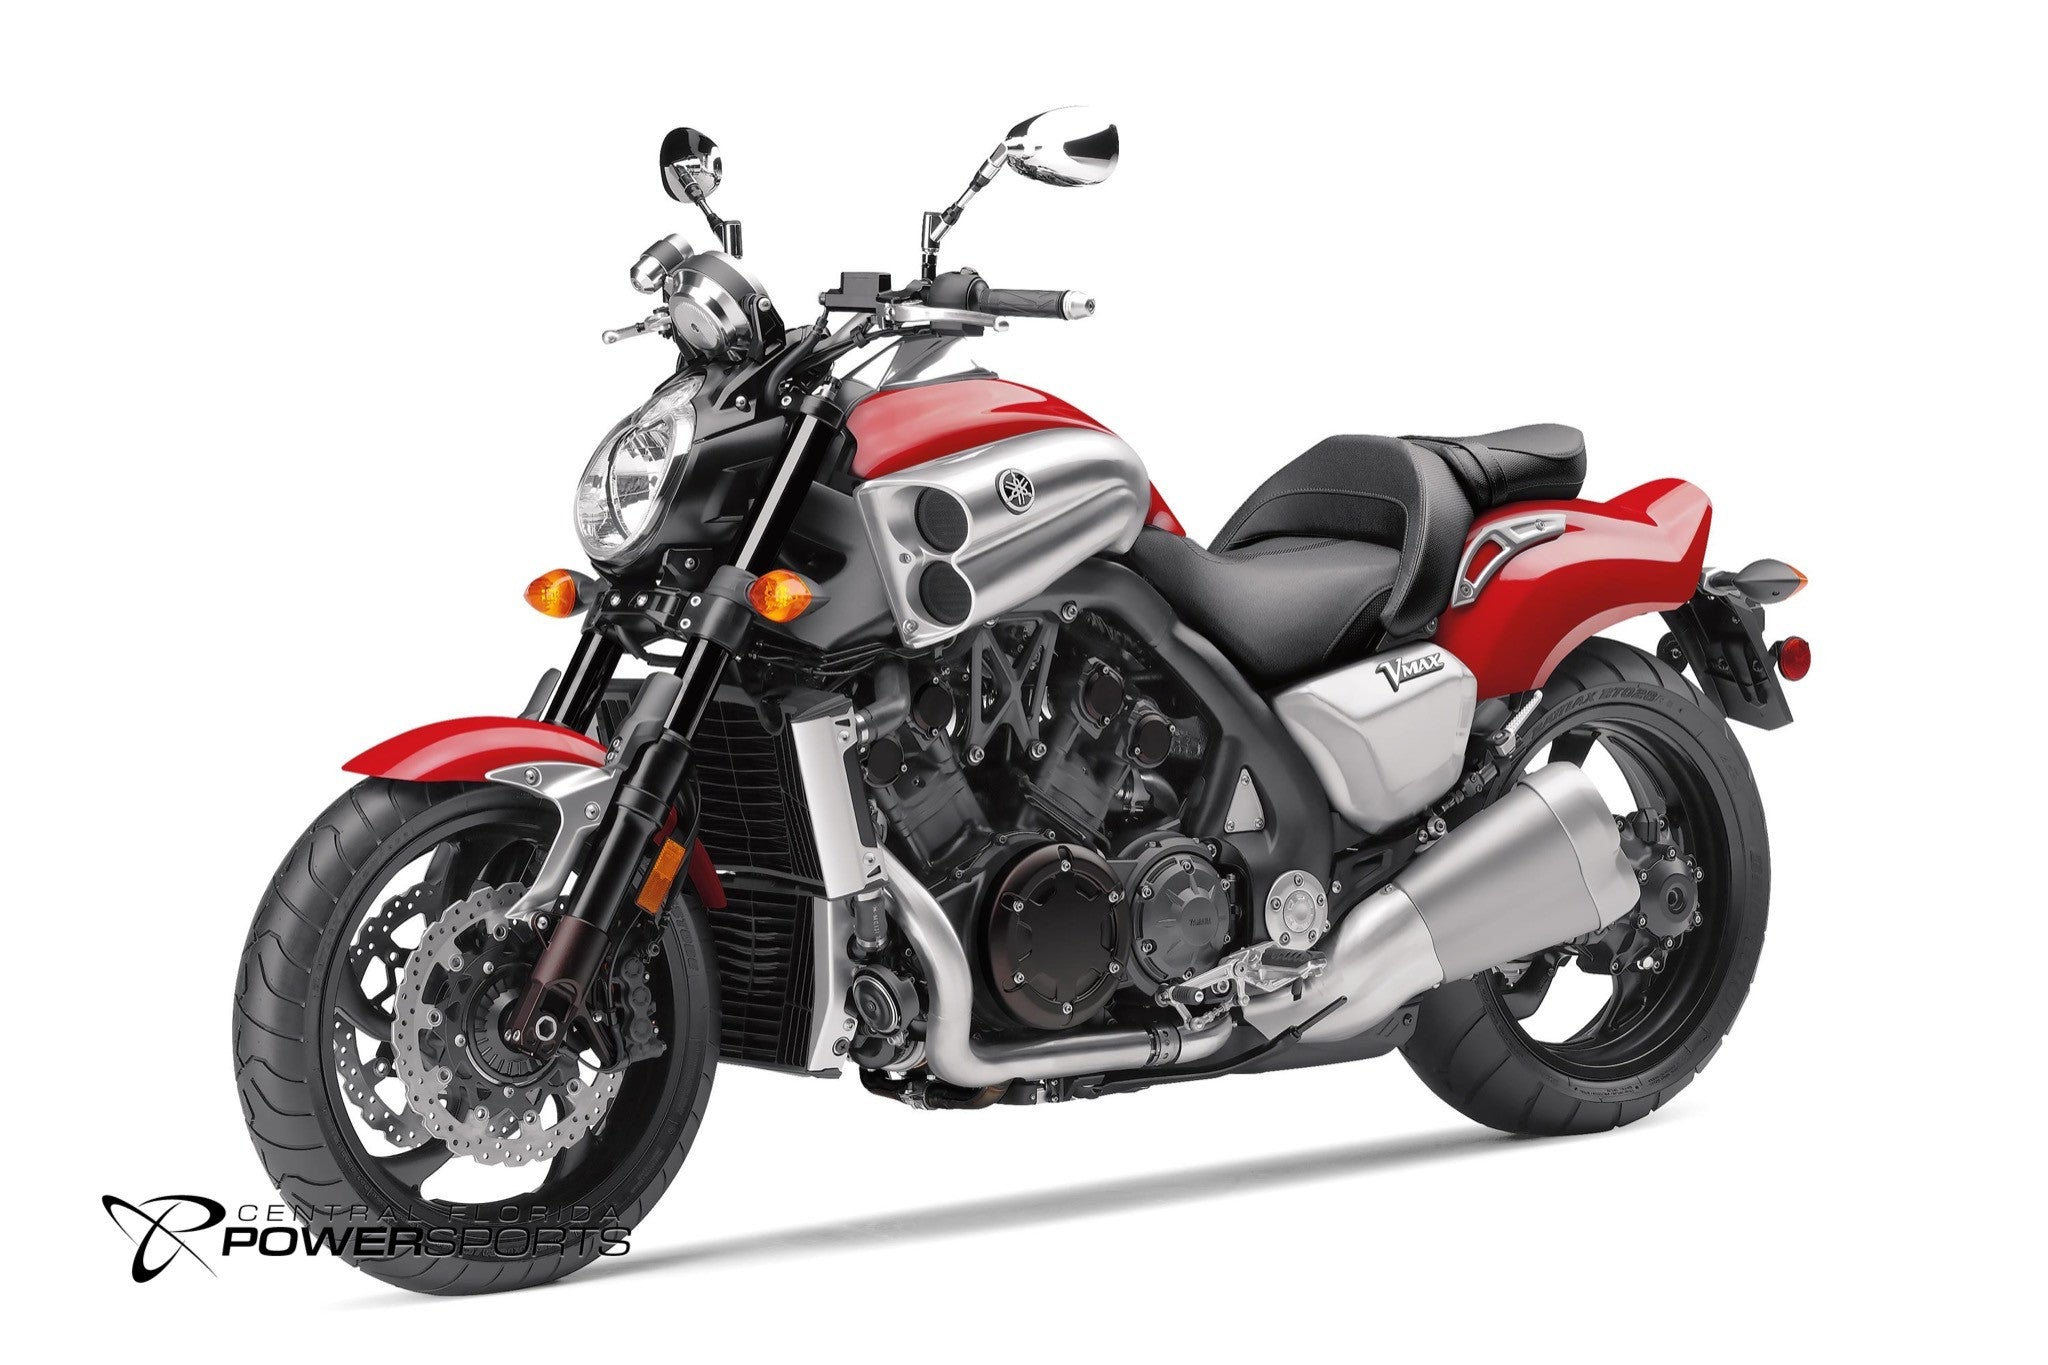 vmax motorcycle pictures  New 2017 Yamaha VMAX Cruiser Motorcycles For Sale - Central Florida ...